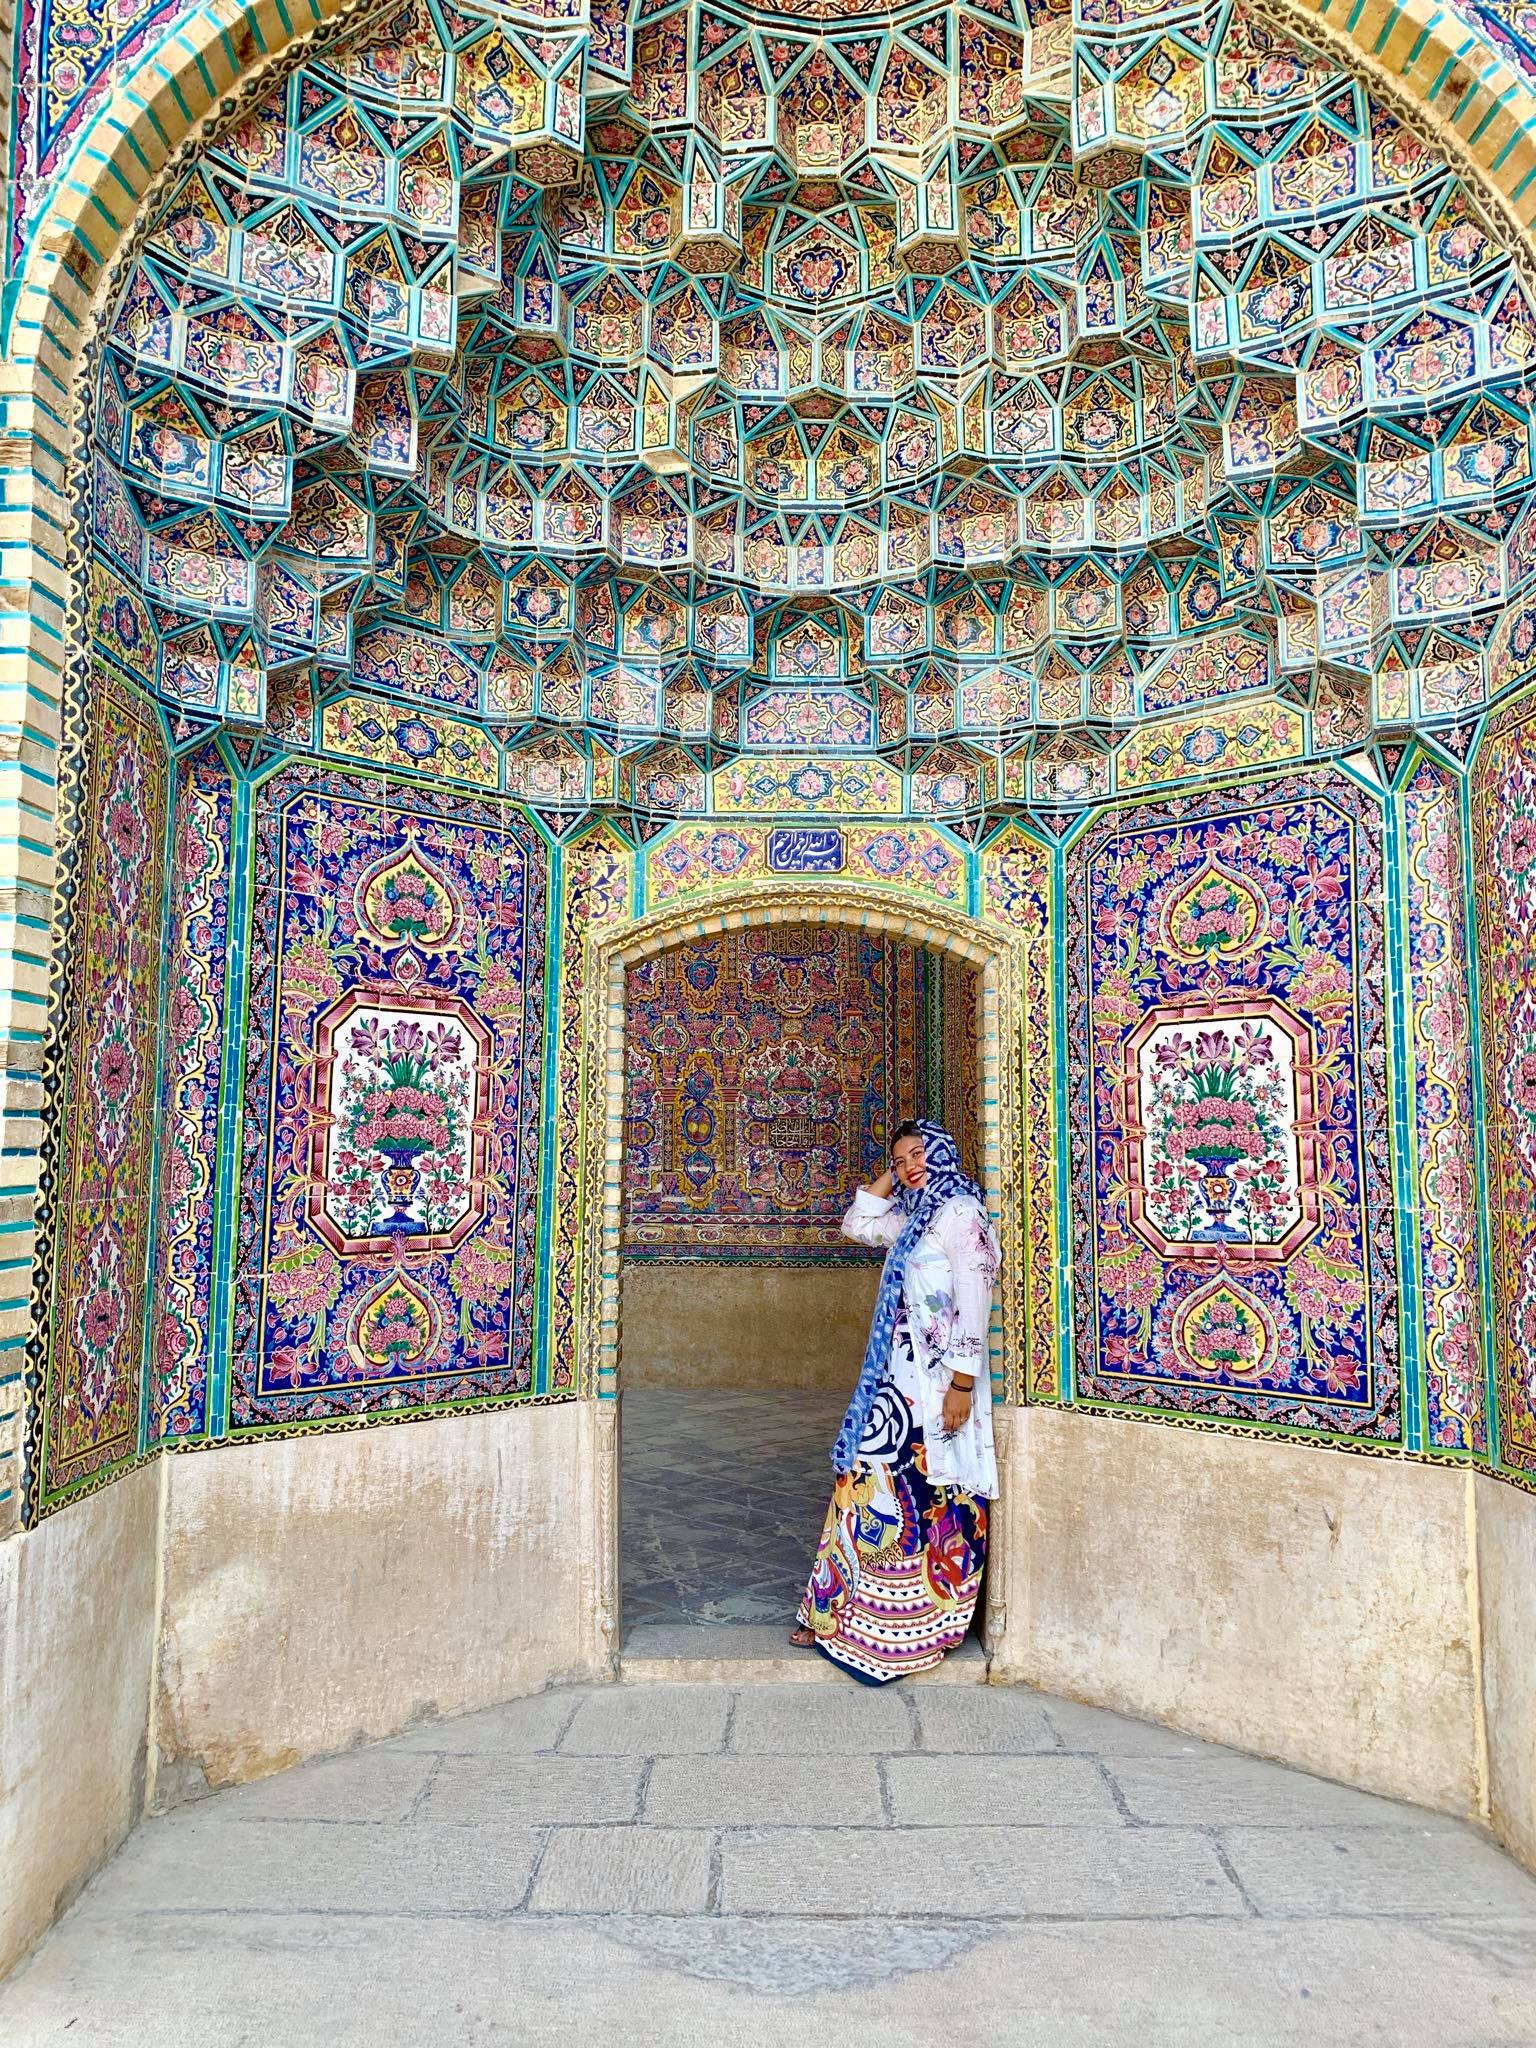 Kach Solo Travels in 2019 Full day tour of Shiraz35.jpg